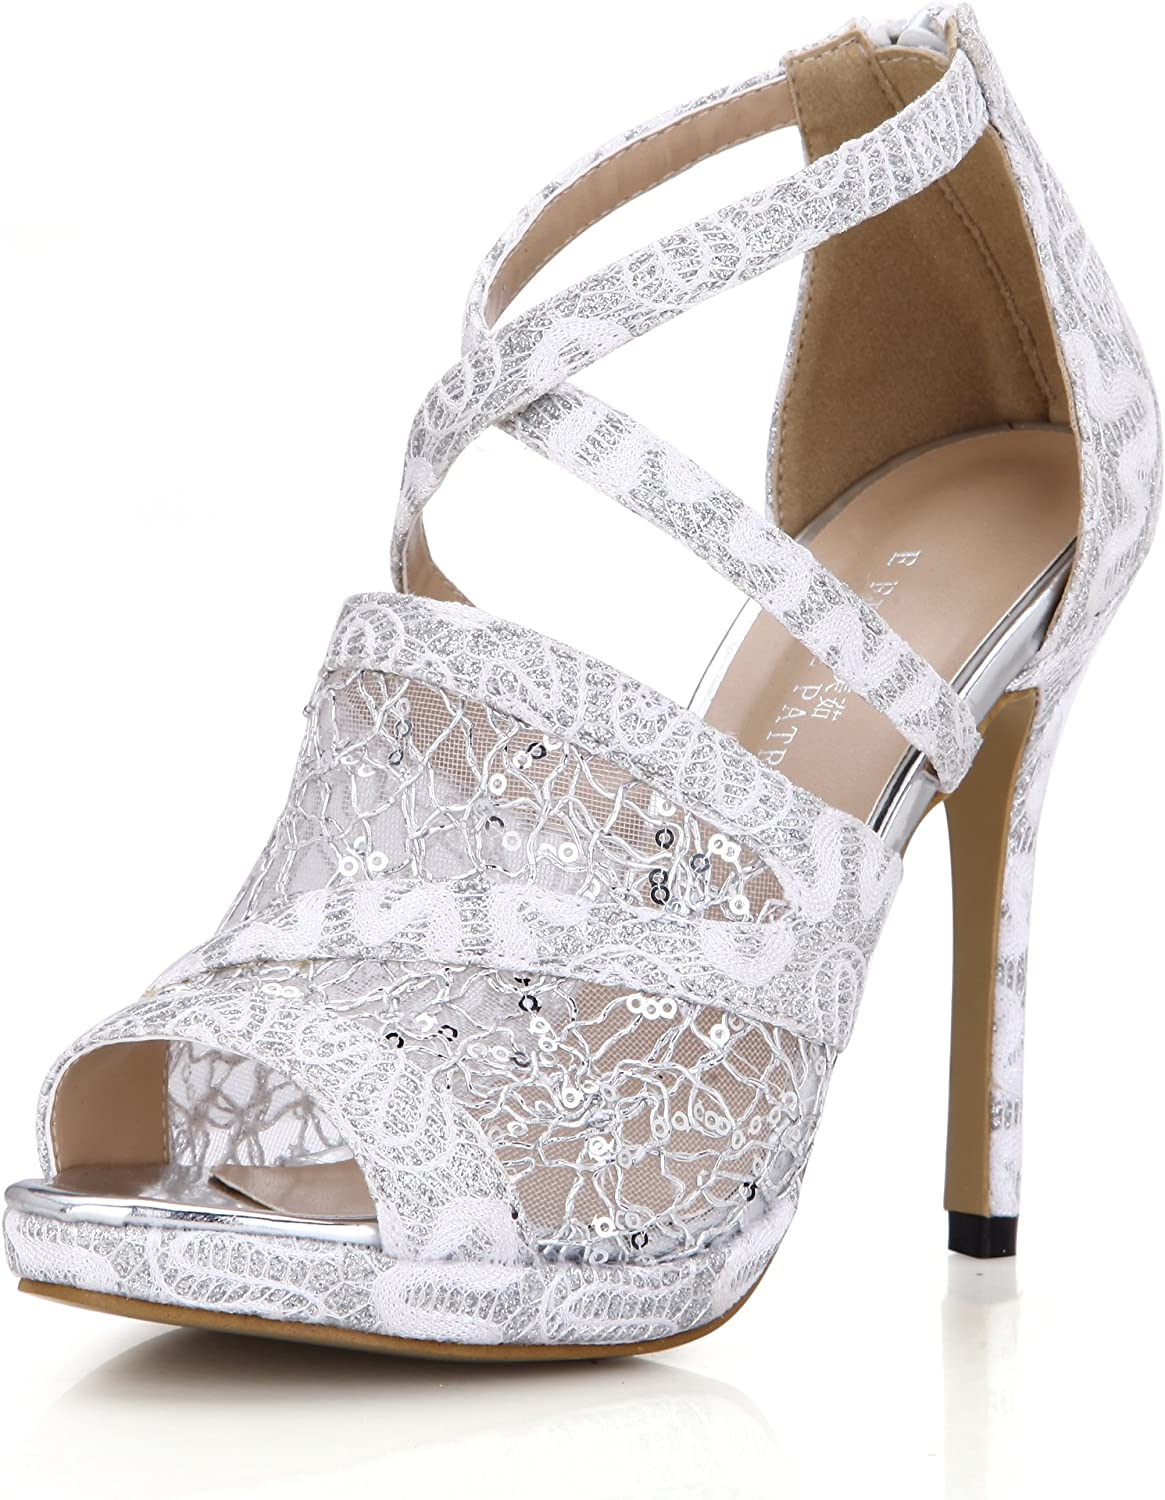 Lace Sandal Pumps Women Peep Toe Dress Party Stiletto shoes Dolphin Prom Wedding Heels SM00218